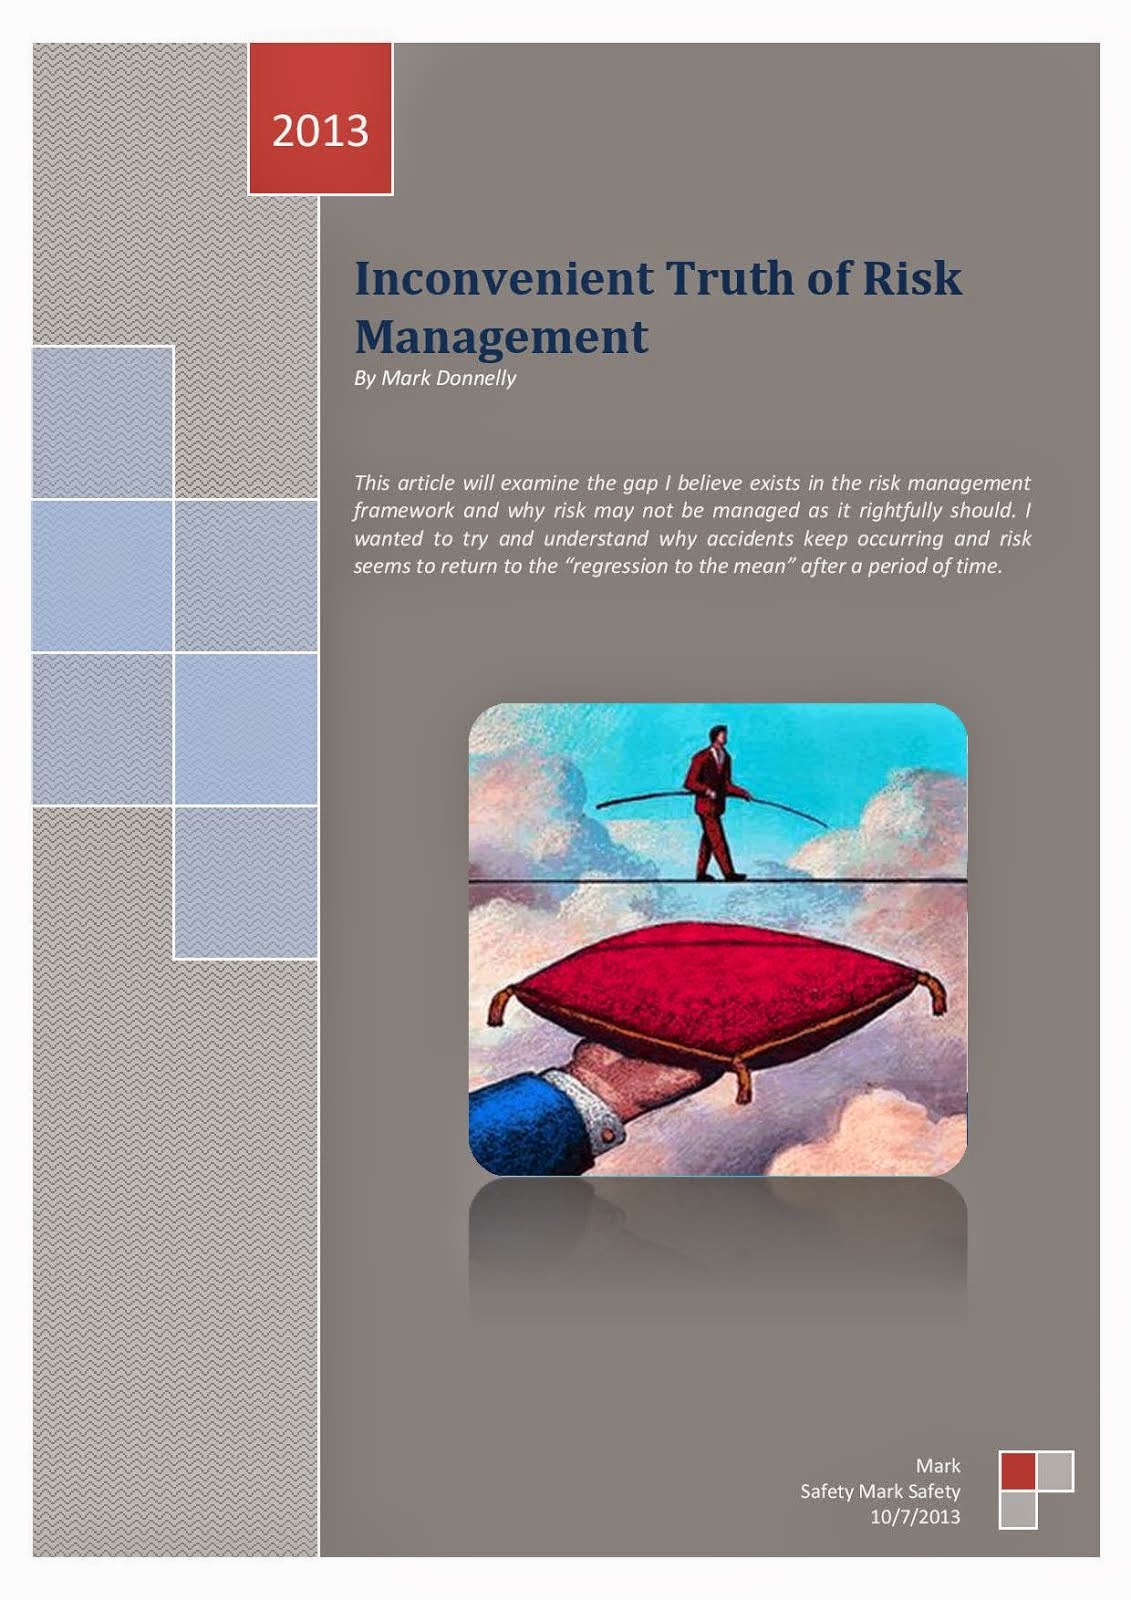 Inconvenient truth of Risk Management